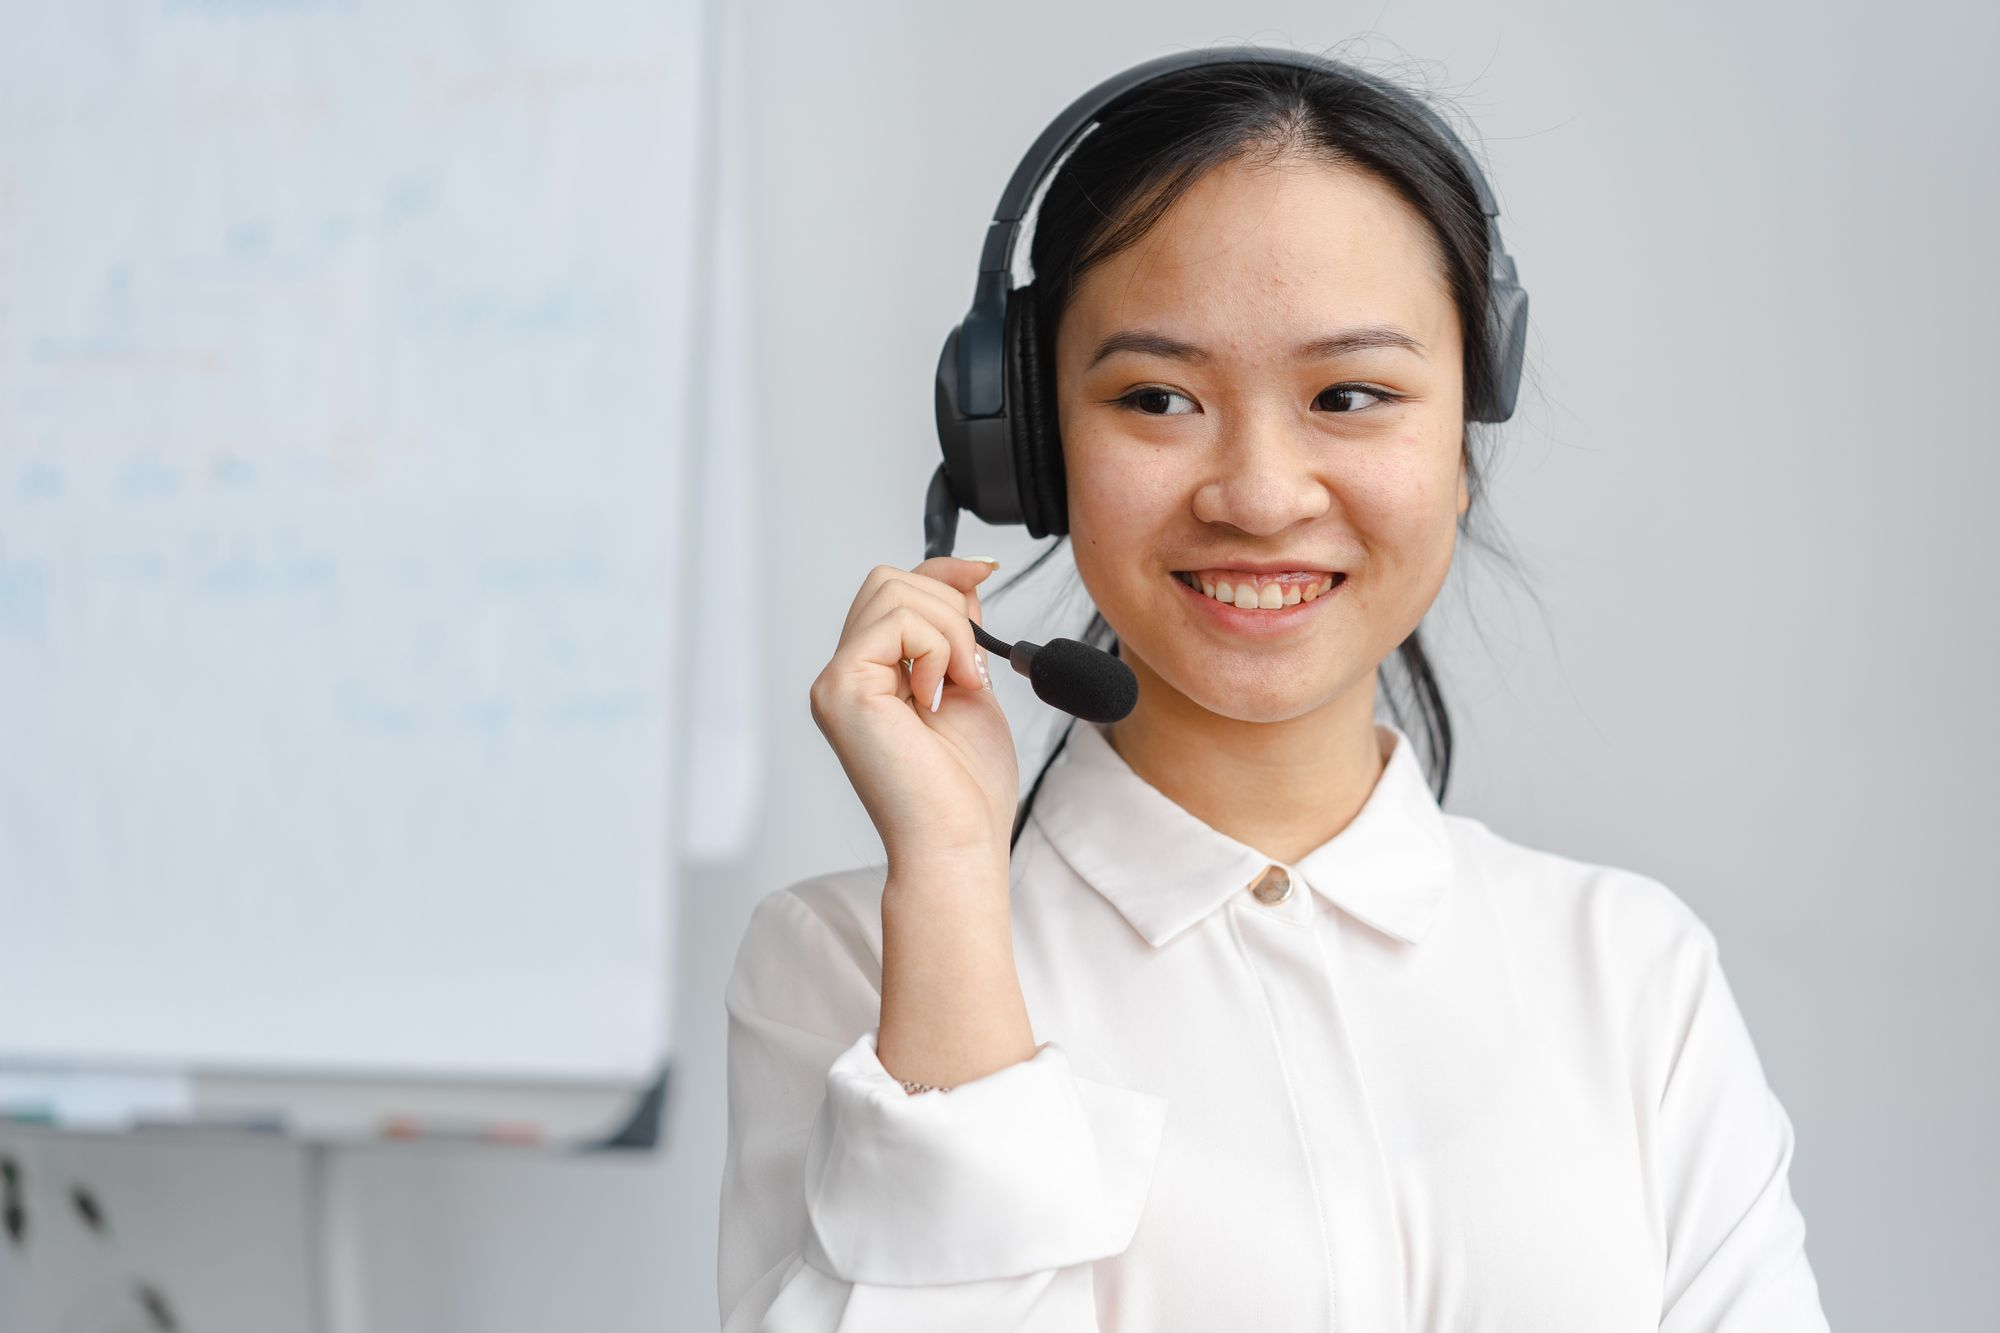 8 reasons why customer service should be prompt and professional